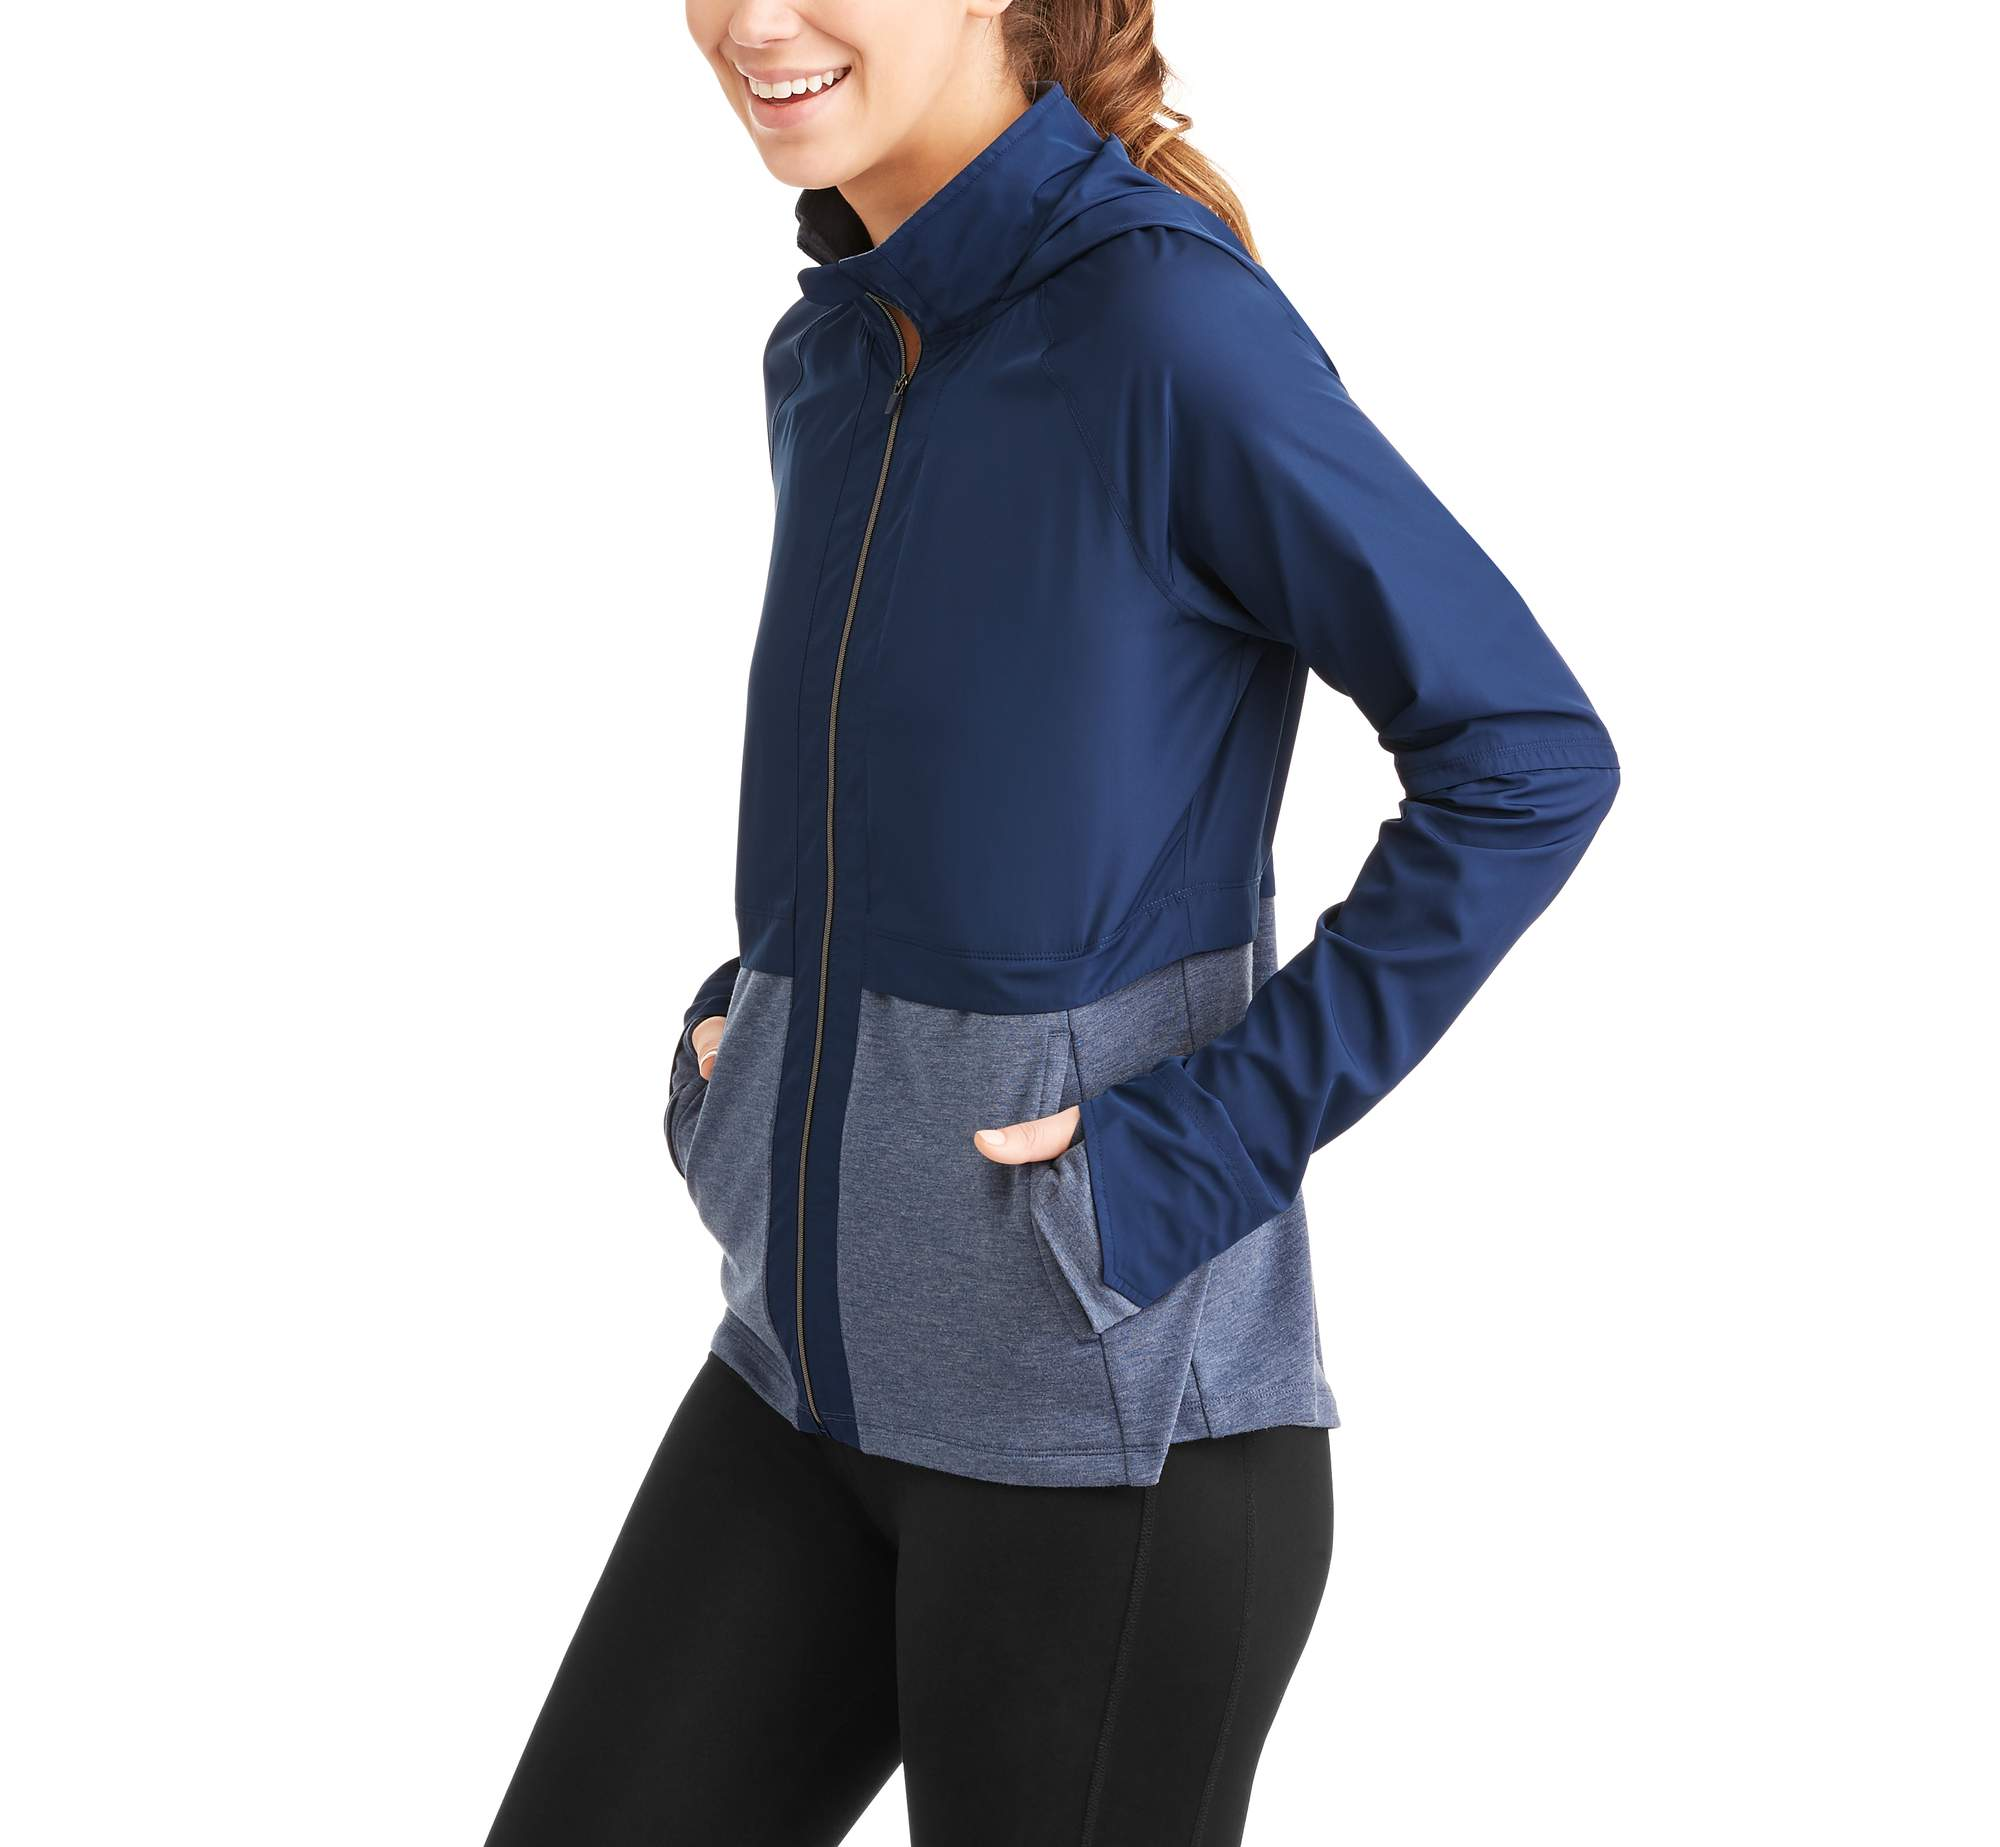 Women's Core Active Wind Jacket with Packable Hood